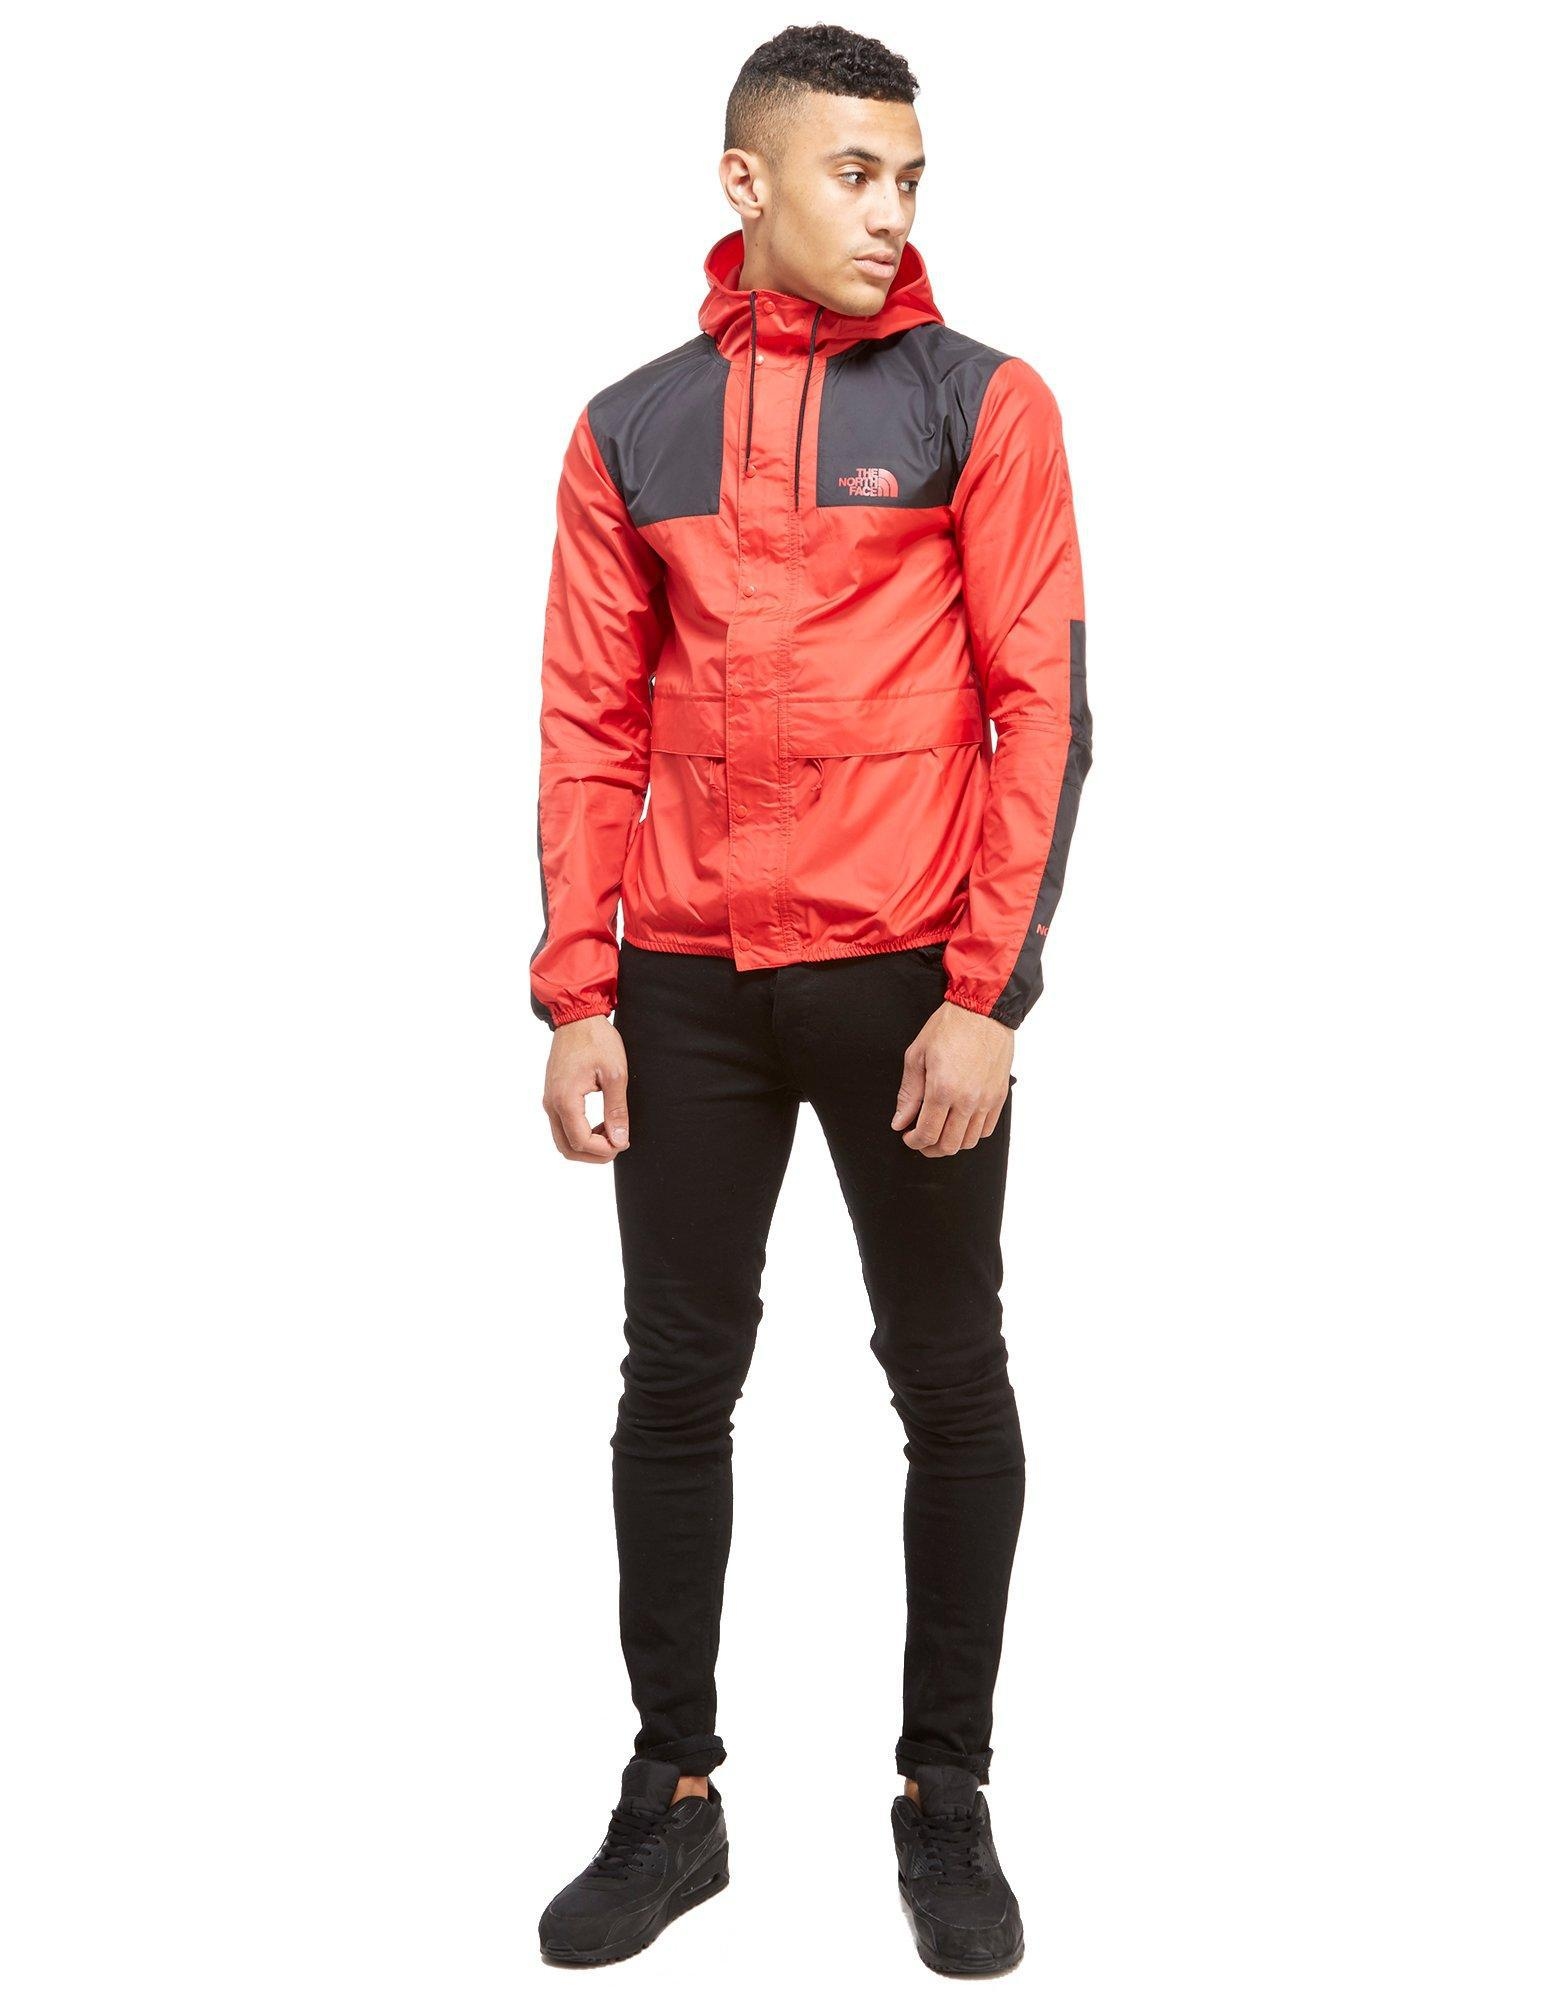 c007531bf The North Face 1985 Mountain Jacket in Red for Men - Lyst